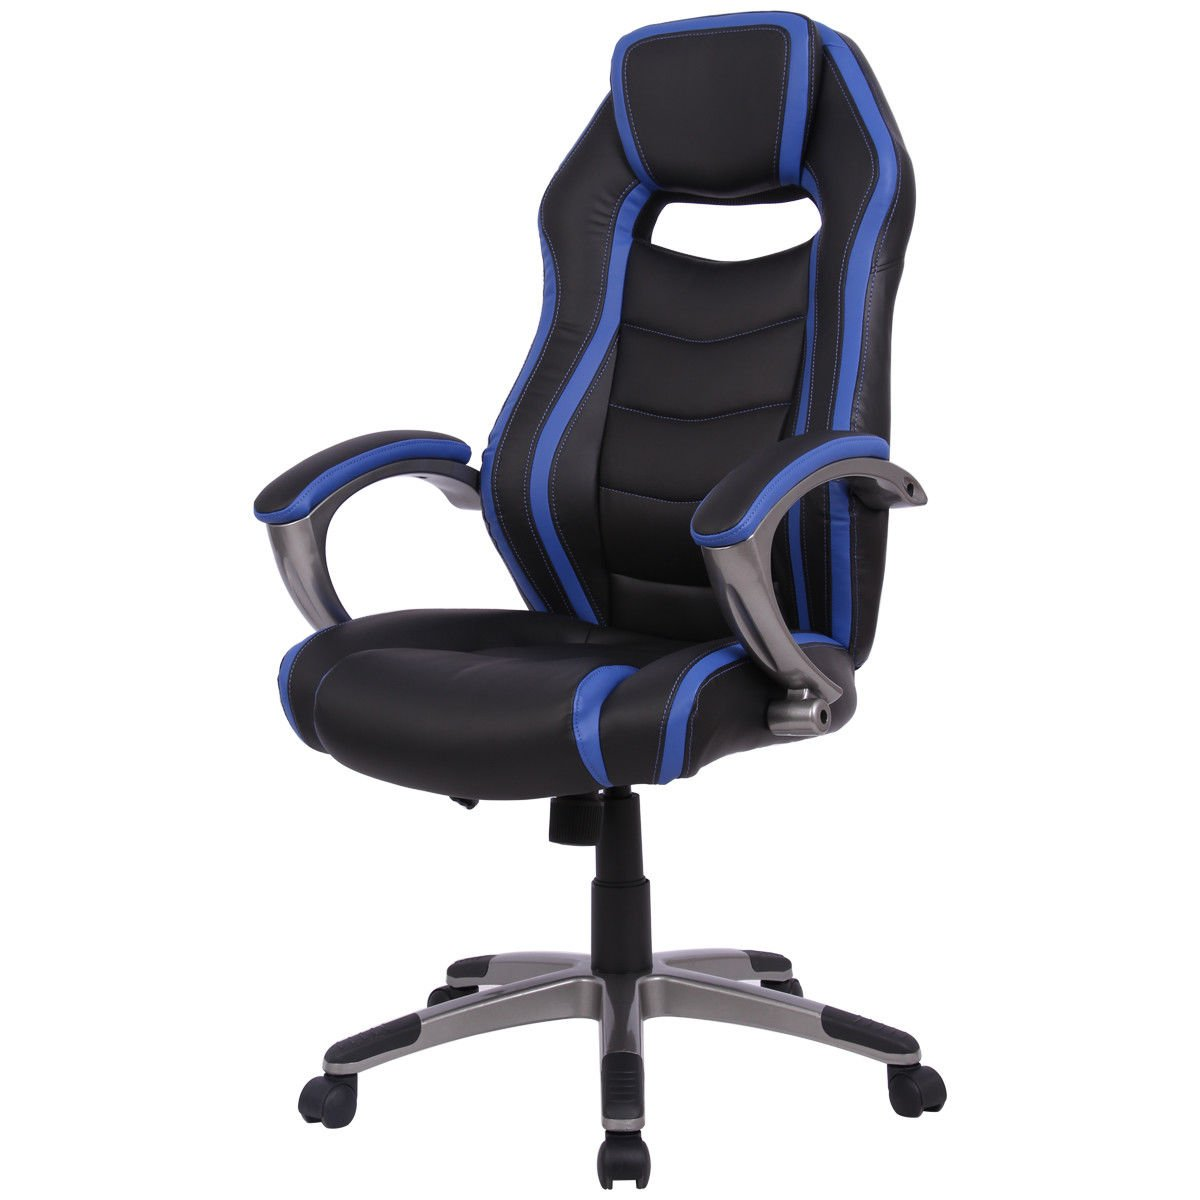 Giantex High Back Racing Chair Home Office Gaming Chair Bucket Seat with Swiveling Casters (Blue & Black)